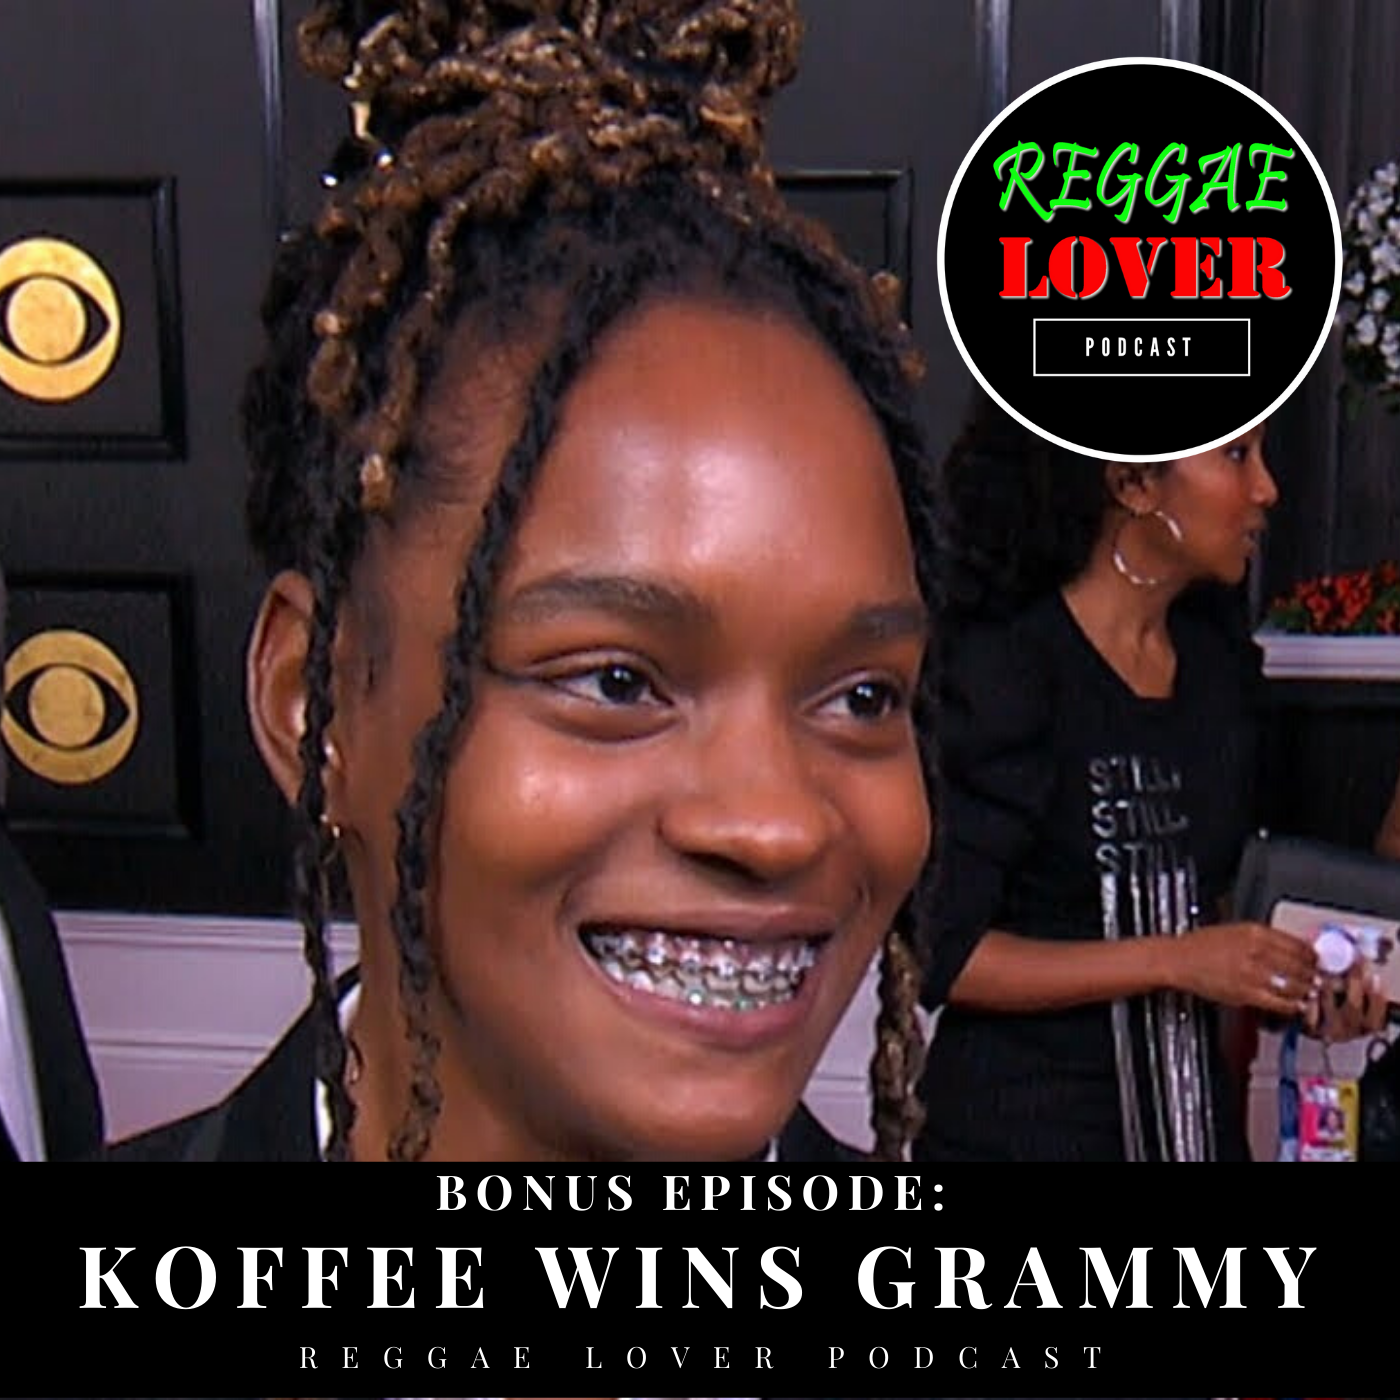 Koffee is the youngest solo act and only female ever to win a Grammy for Best Reggae Album.